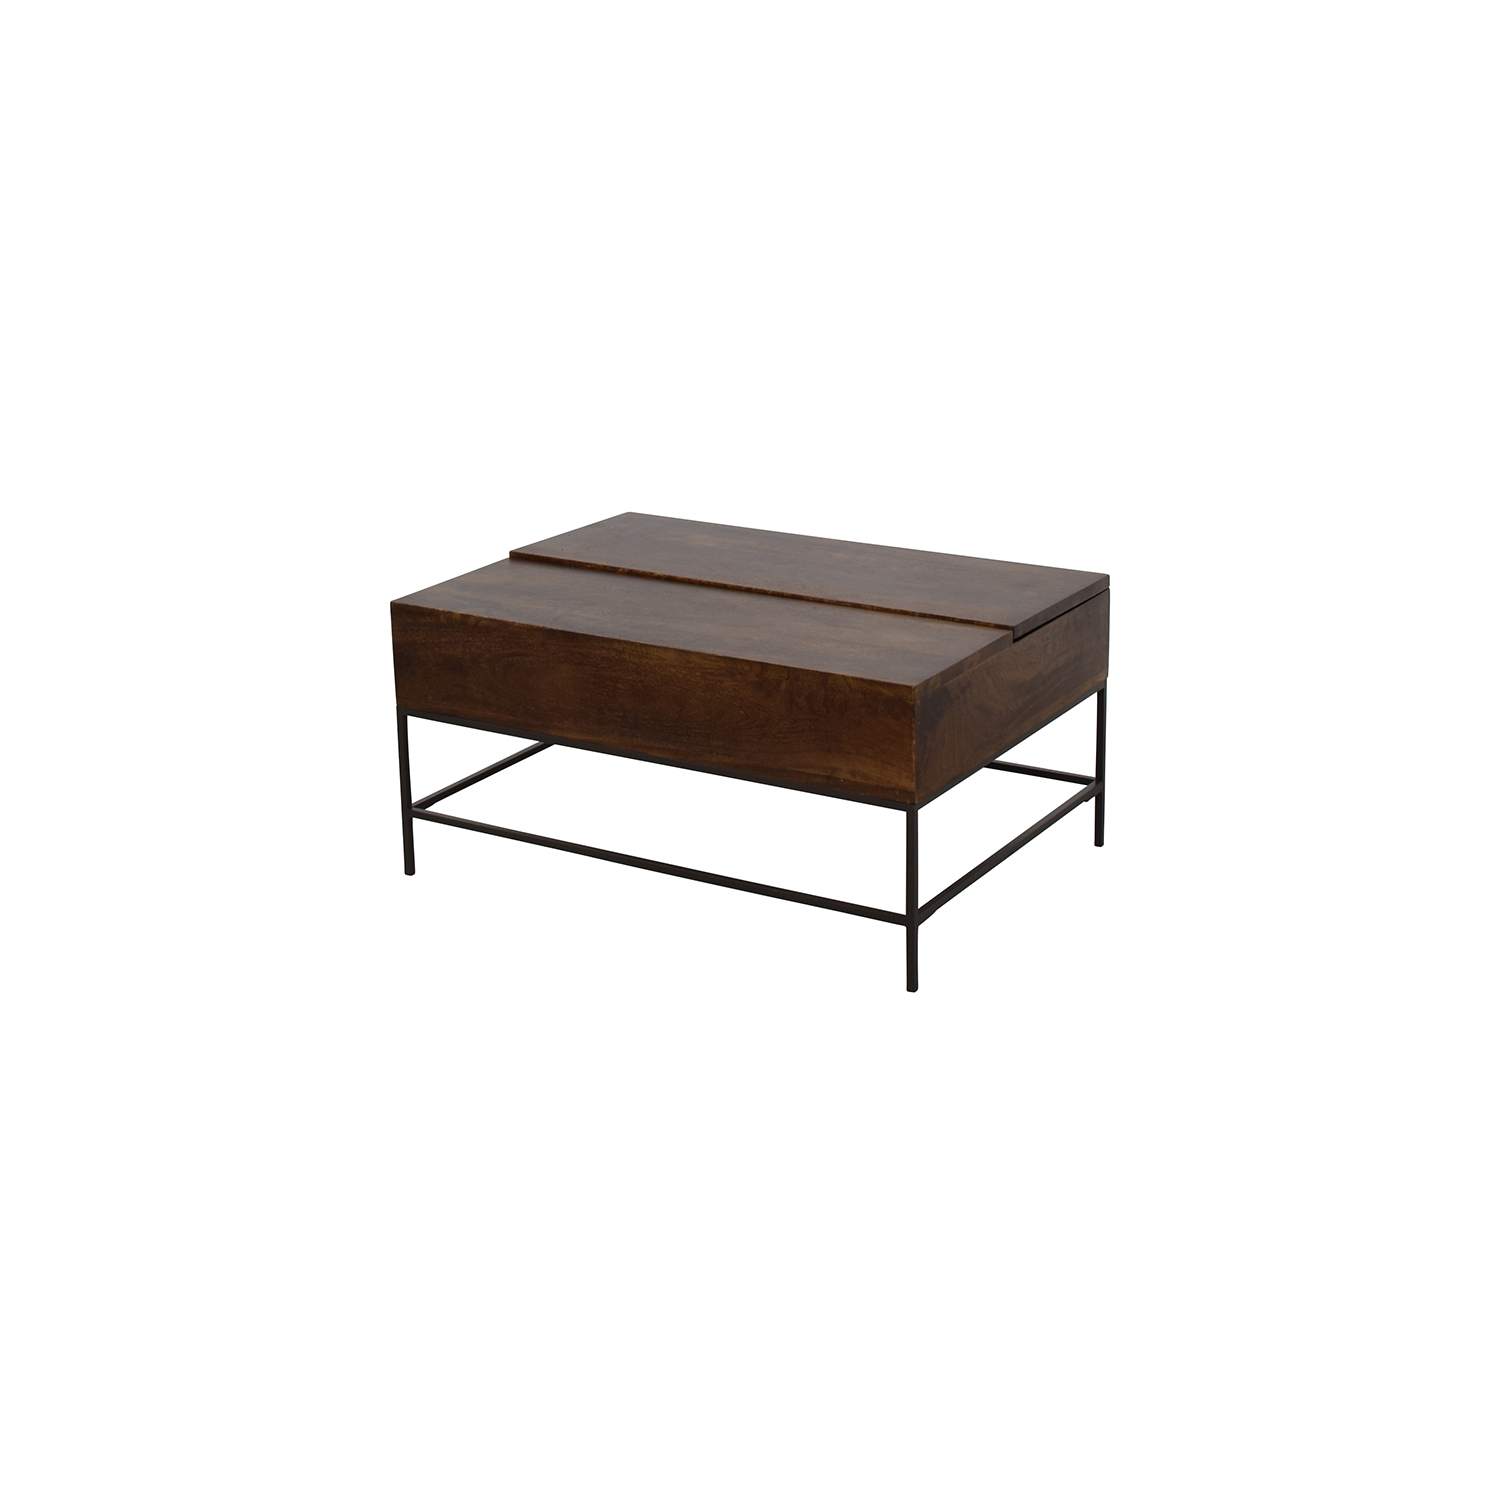 75 Off West Elm West Elm Industrial Storage Coffee Table Tables